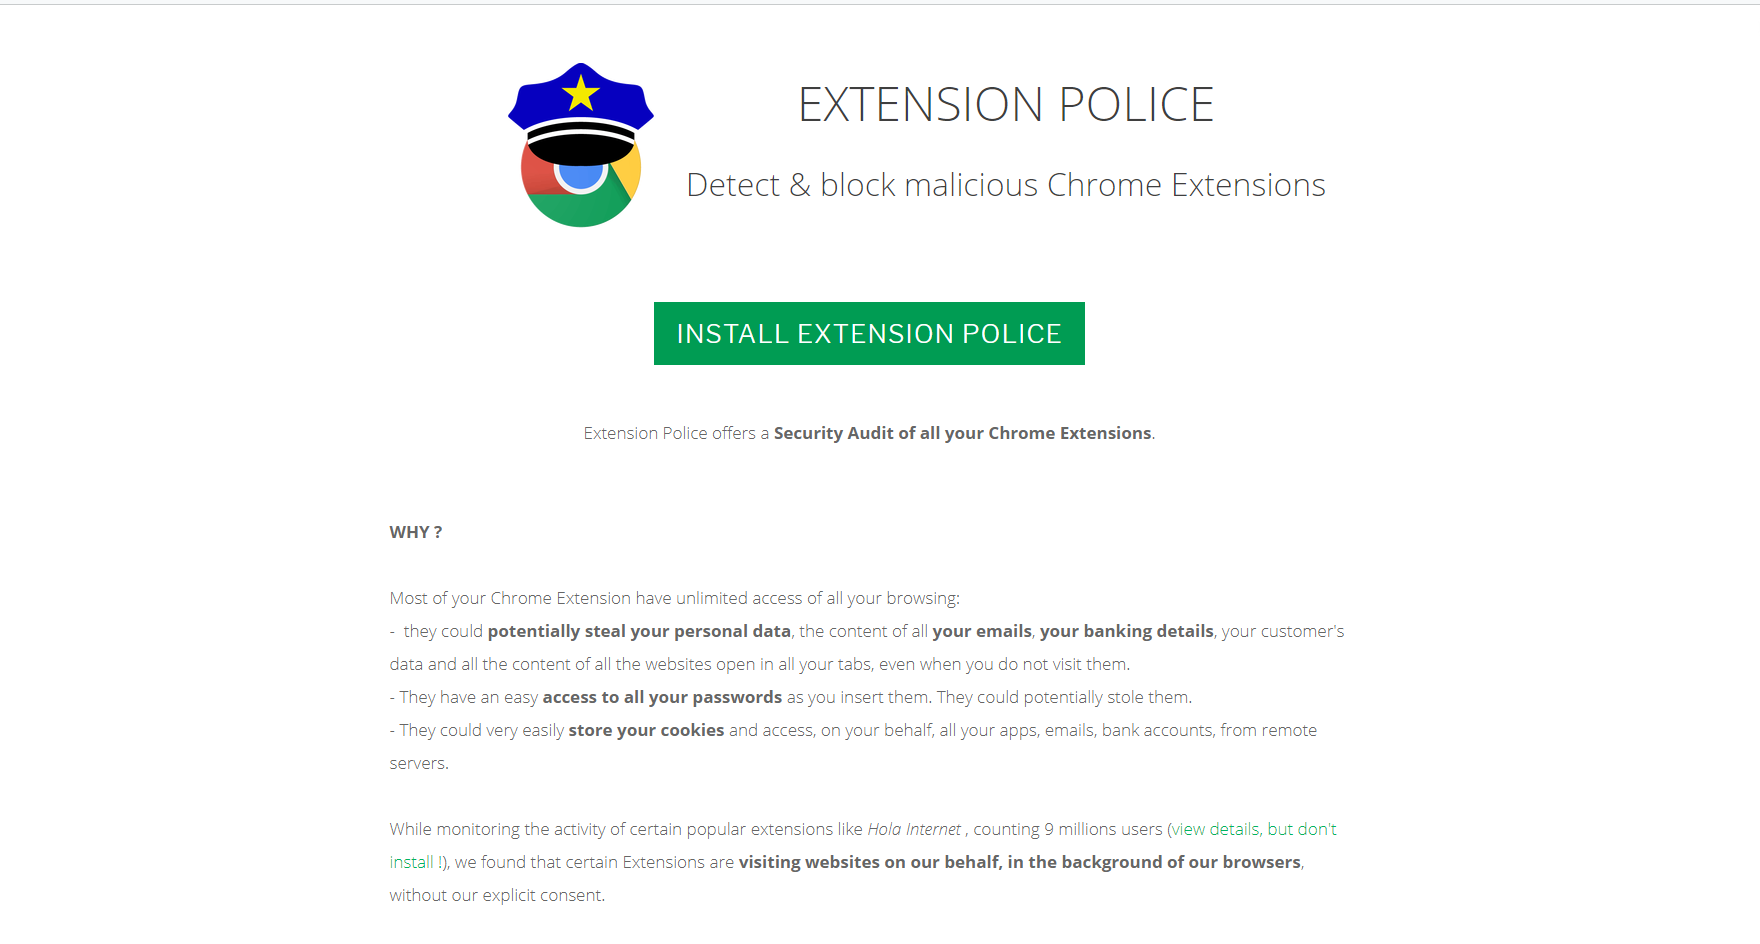 Extension Police